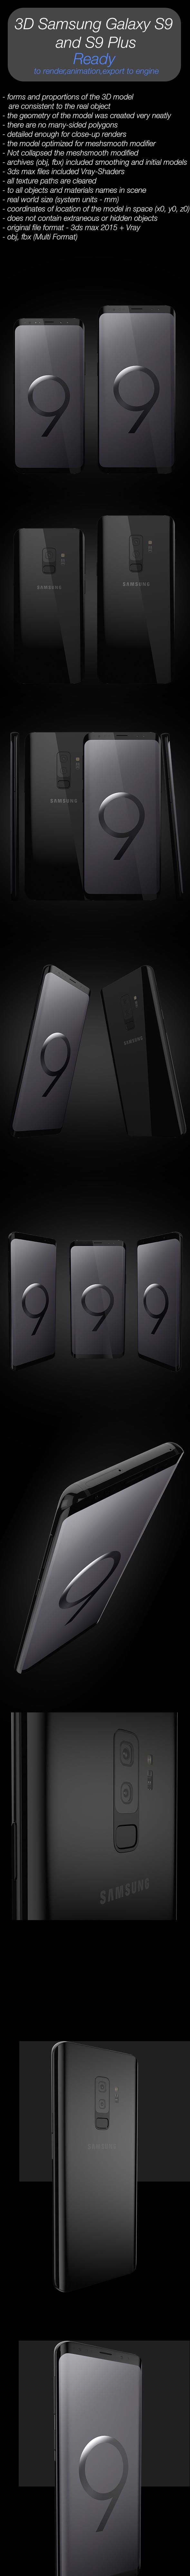 3D Samsung Galaxy S9 and S9 Plus - 3DOcean Item for Sale